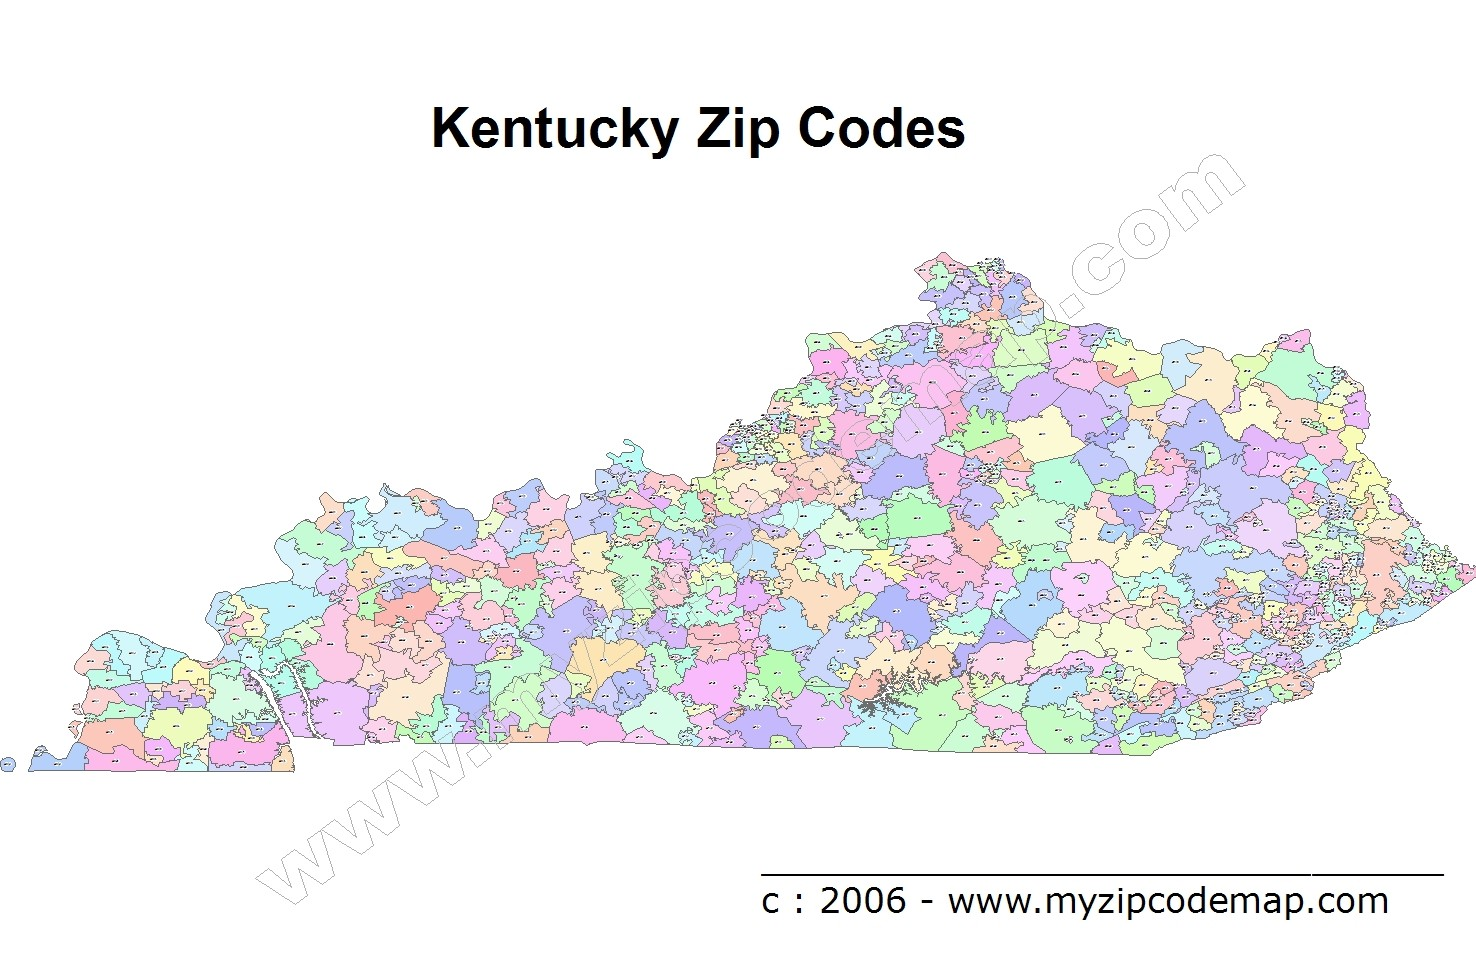 Kentucky (KY) Zip Code Map